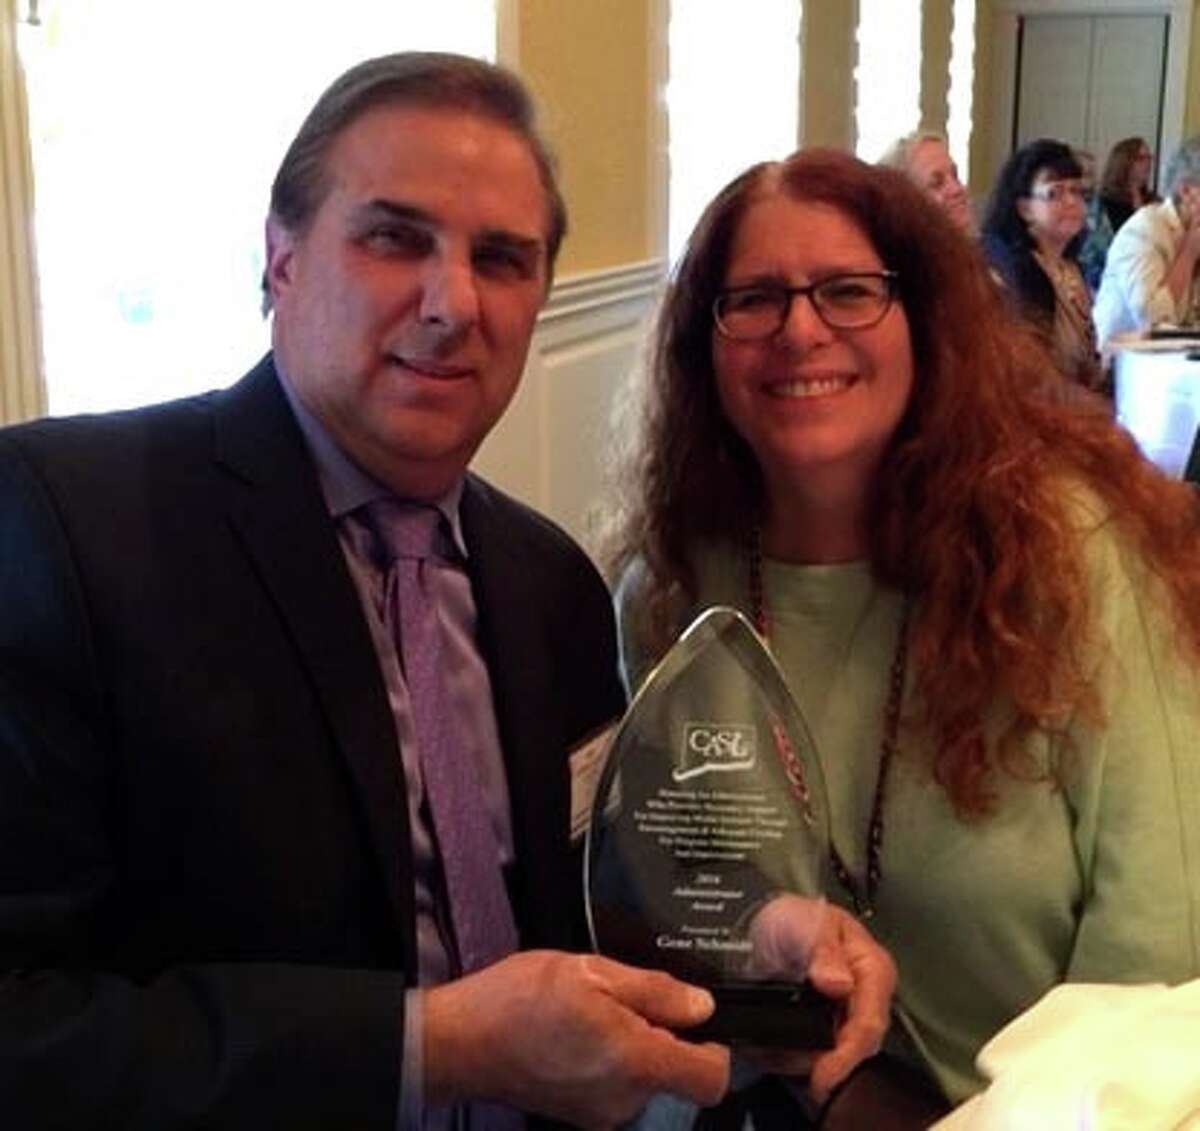 Cos Cob School Principal Gene Schmidt, with Cos Cob media specialist Nancy Shwartz, shows the Administrators Award he won from the Connecticut Association of School Librarians.